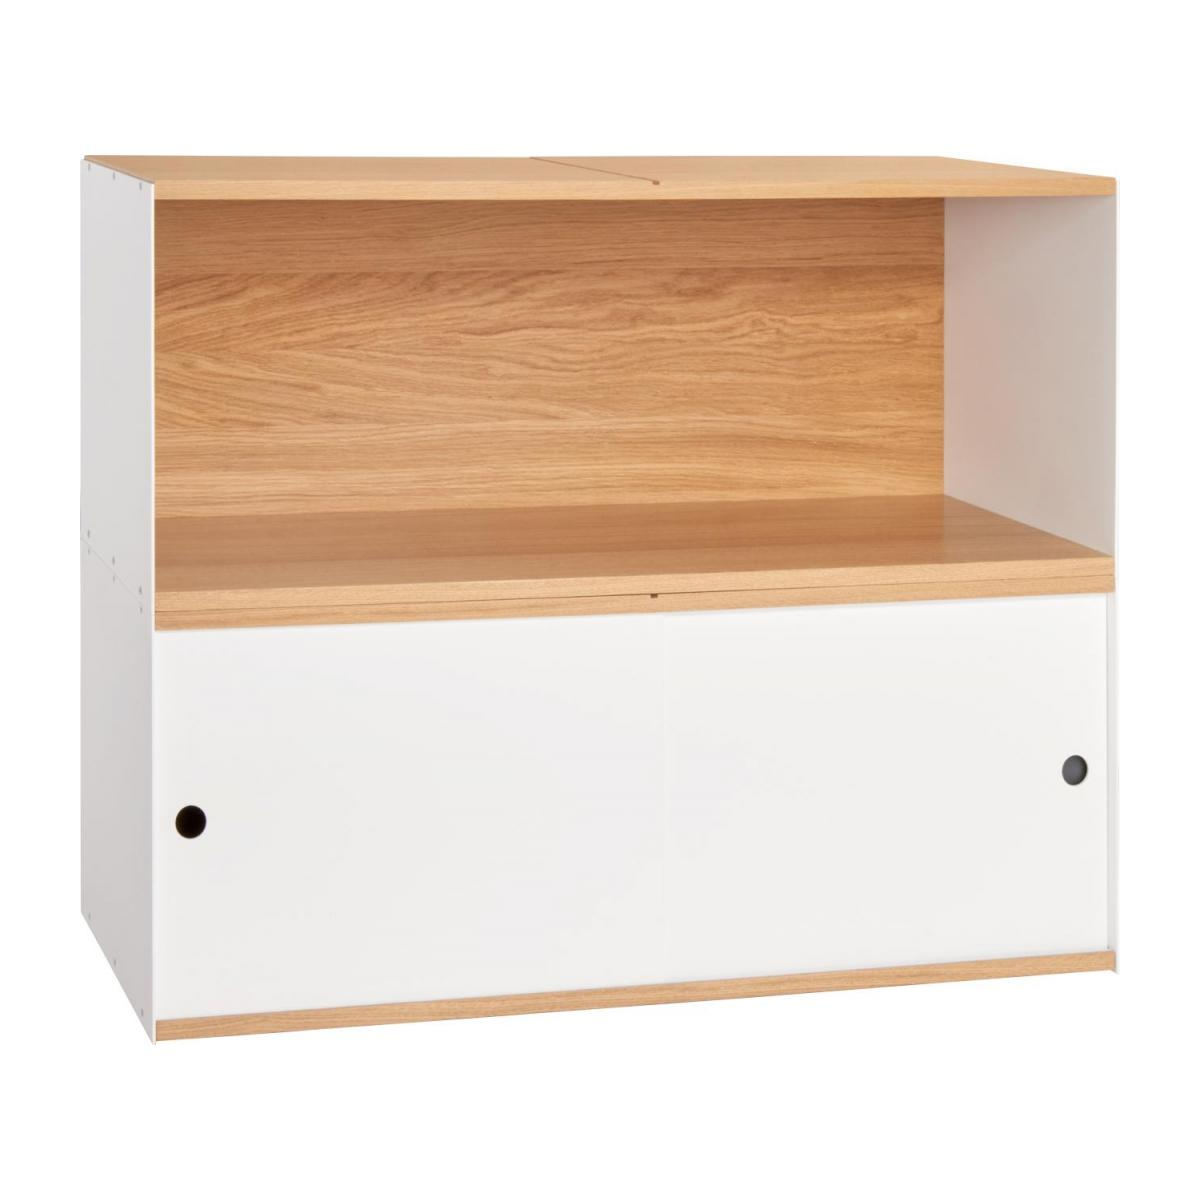 White and oak big closed modular storage rack - Design by Kasch Kasch n°9